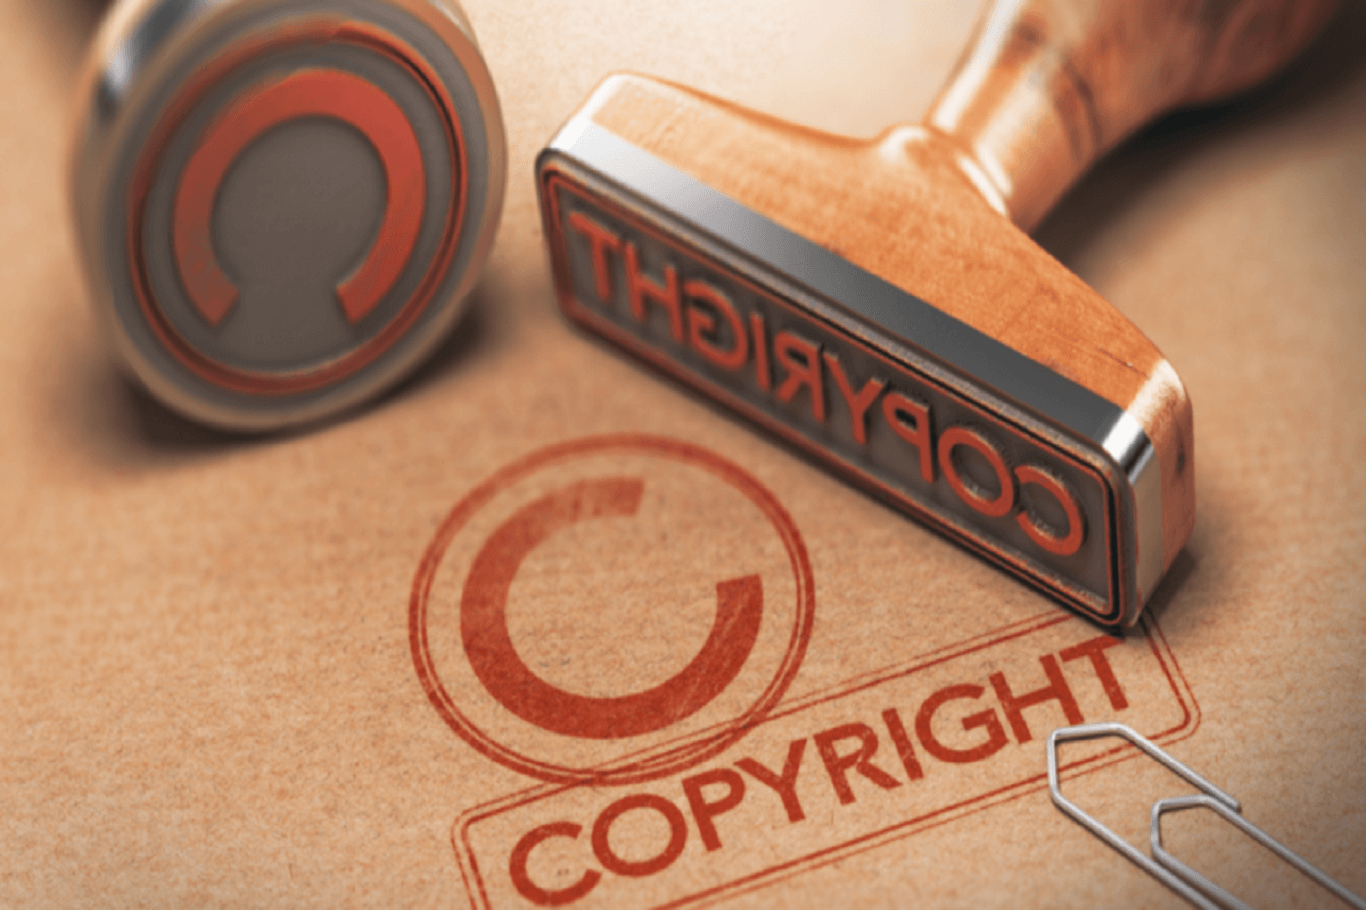 things of copyright law